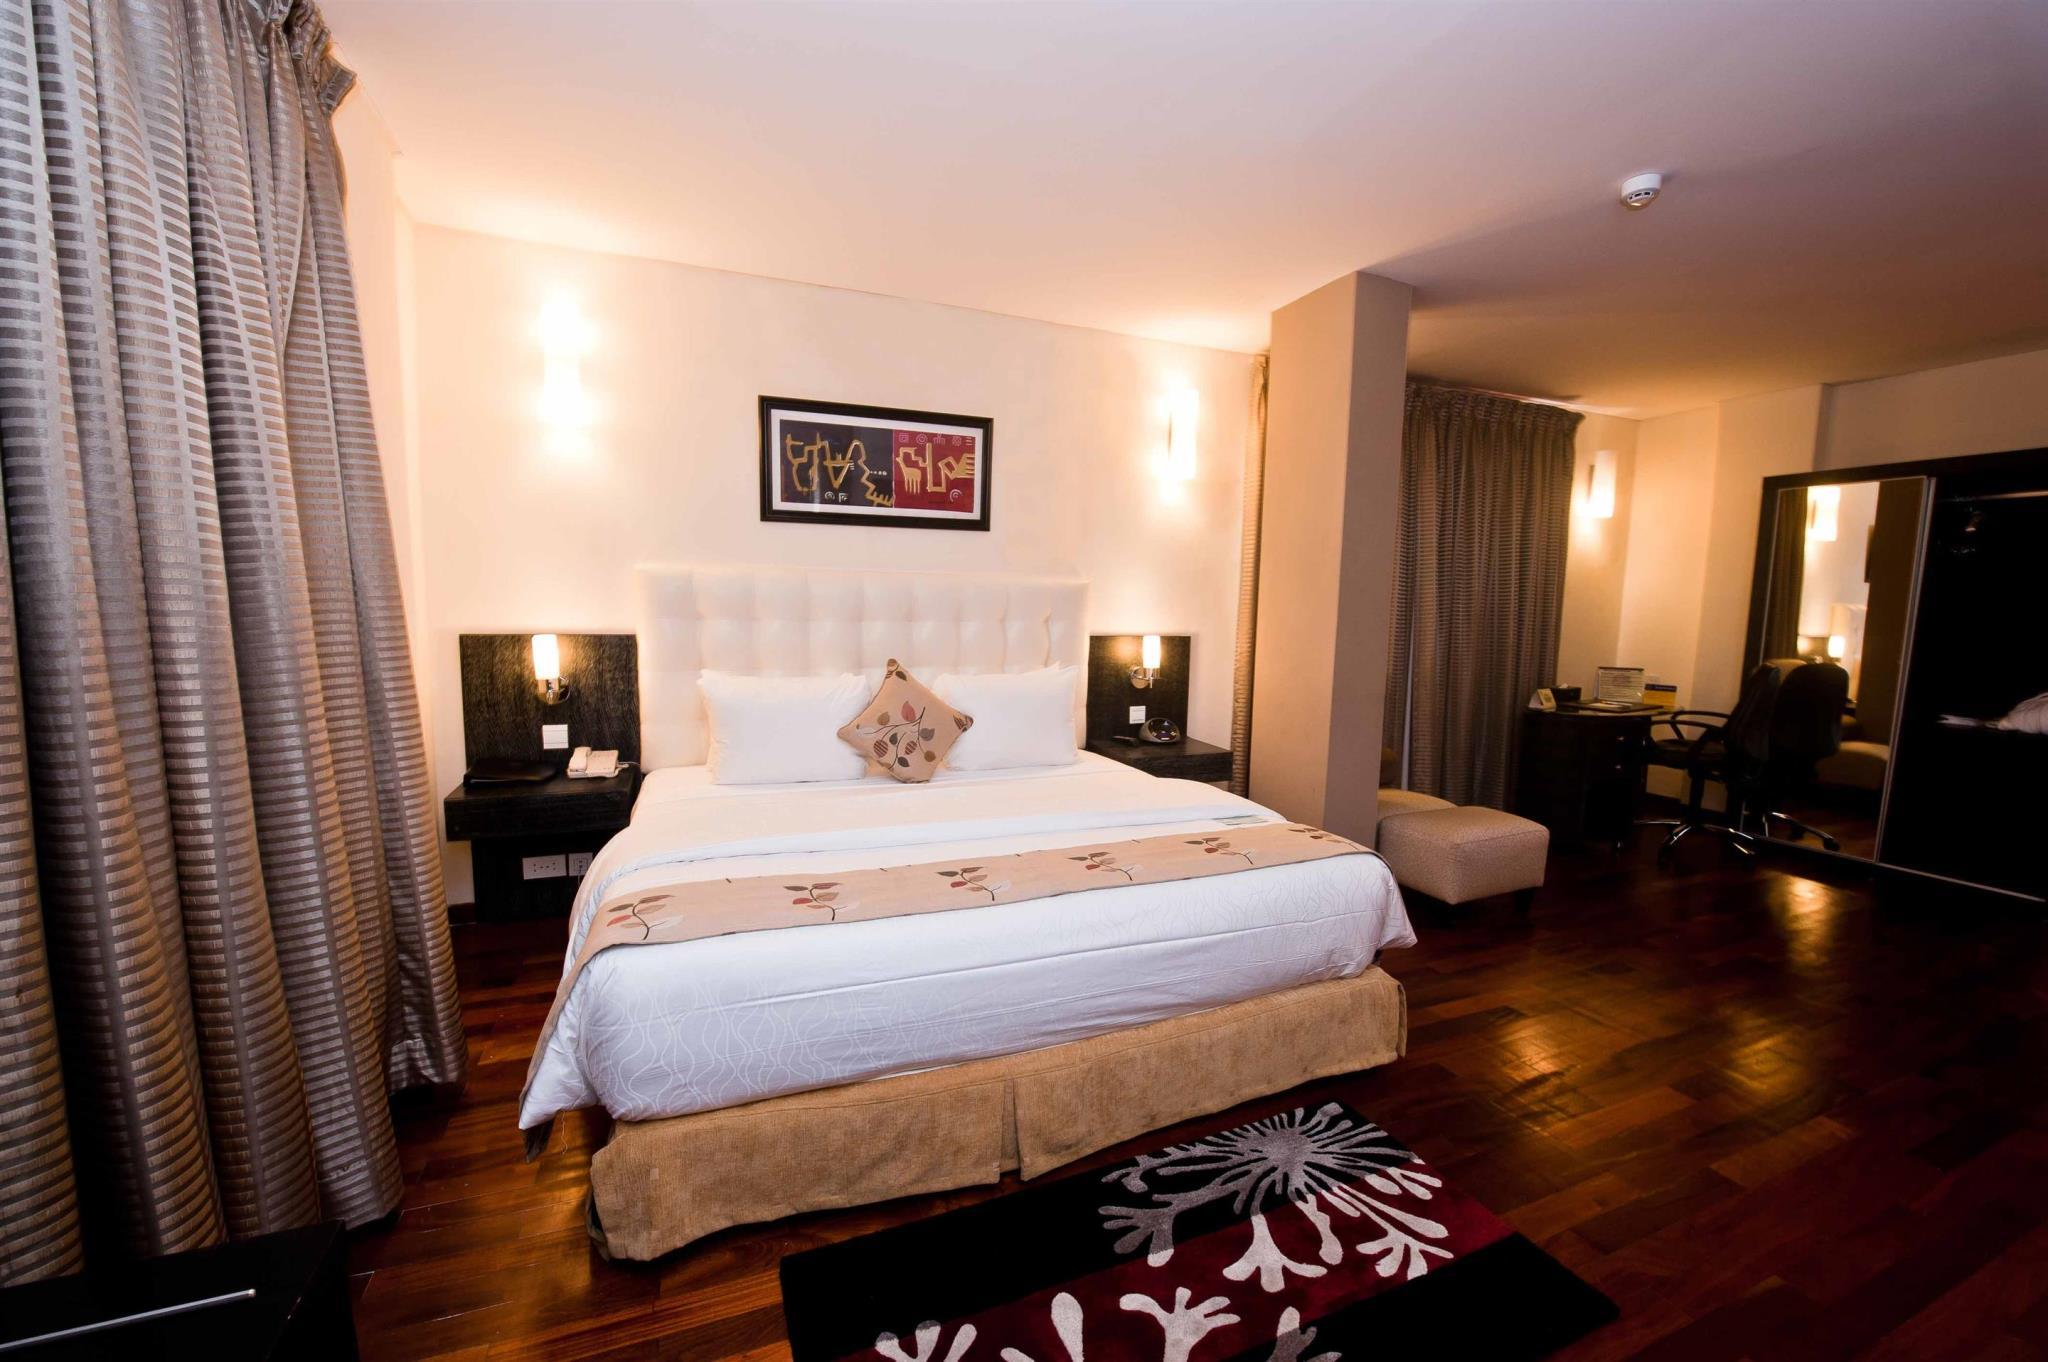 Suite con Letto Matrimoniale King Size e Angolo Cottura - Non Fumatori (Suite with 1 King bed and Kitchenette - No Smoking)